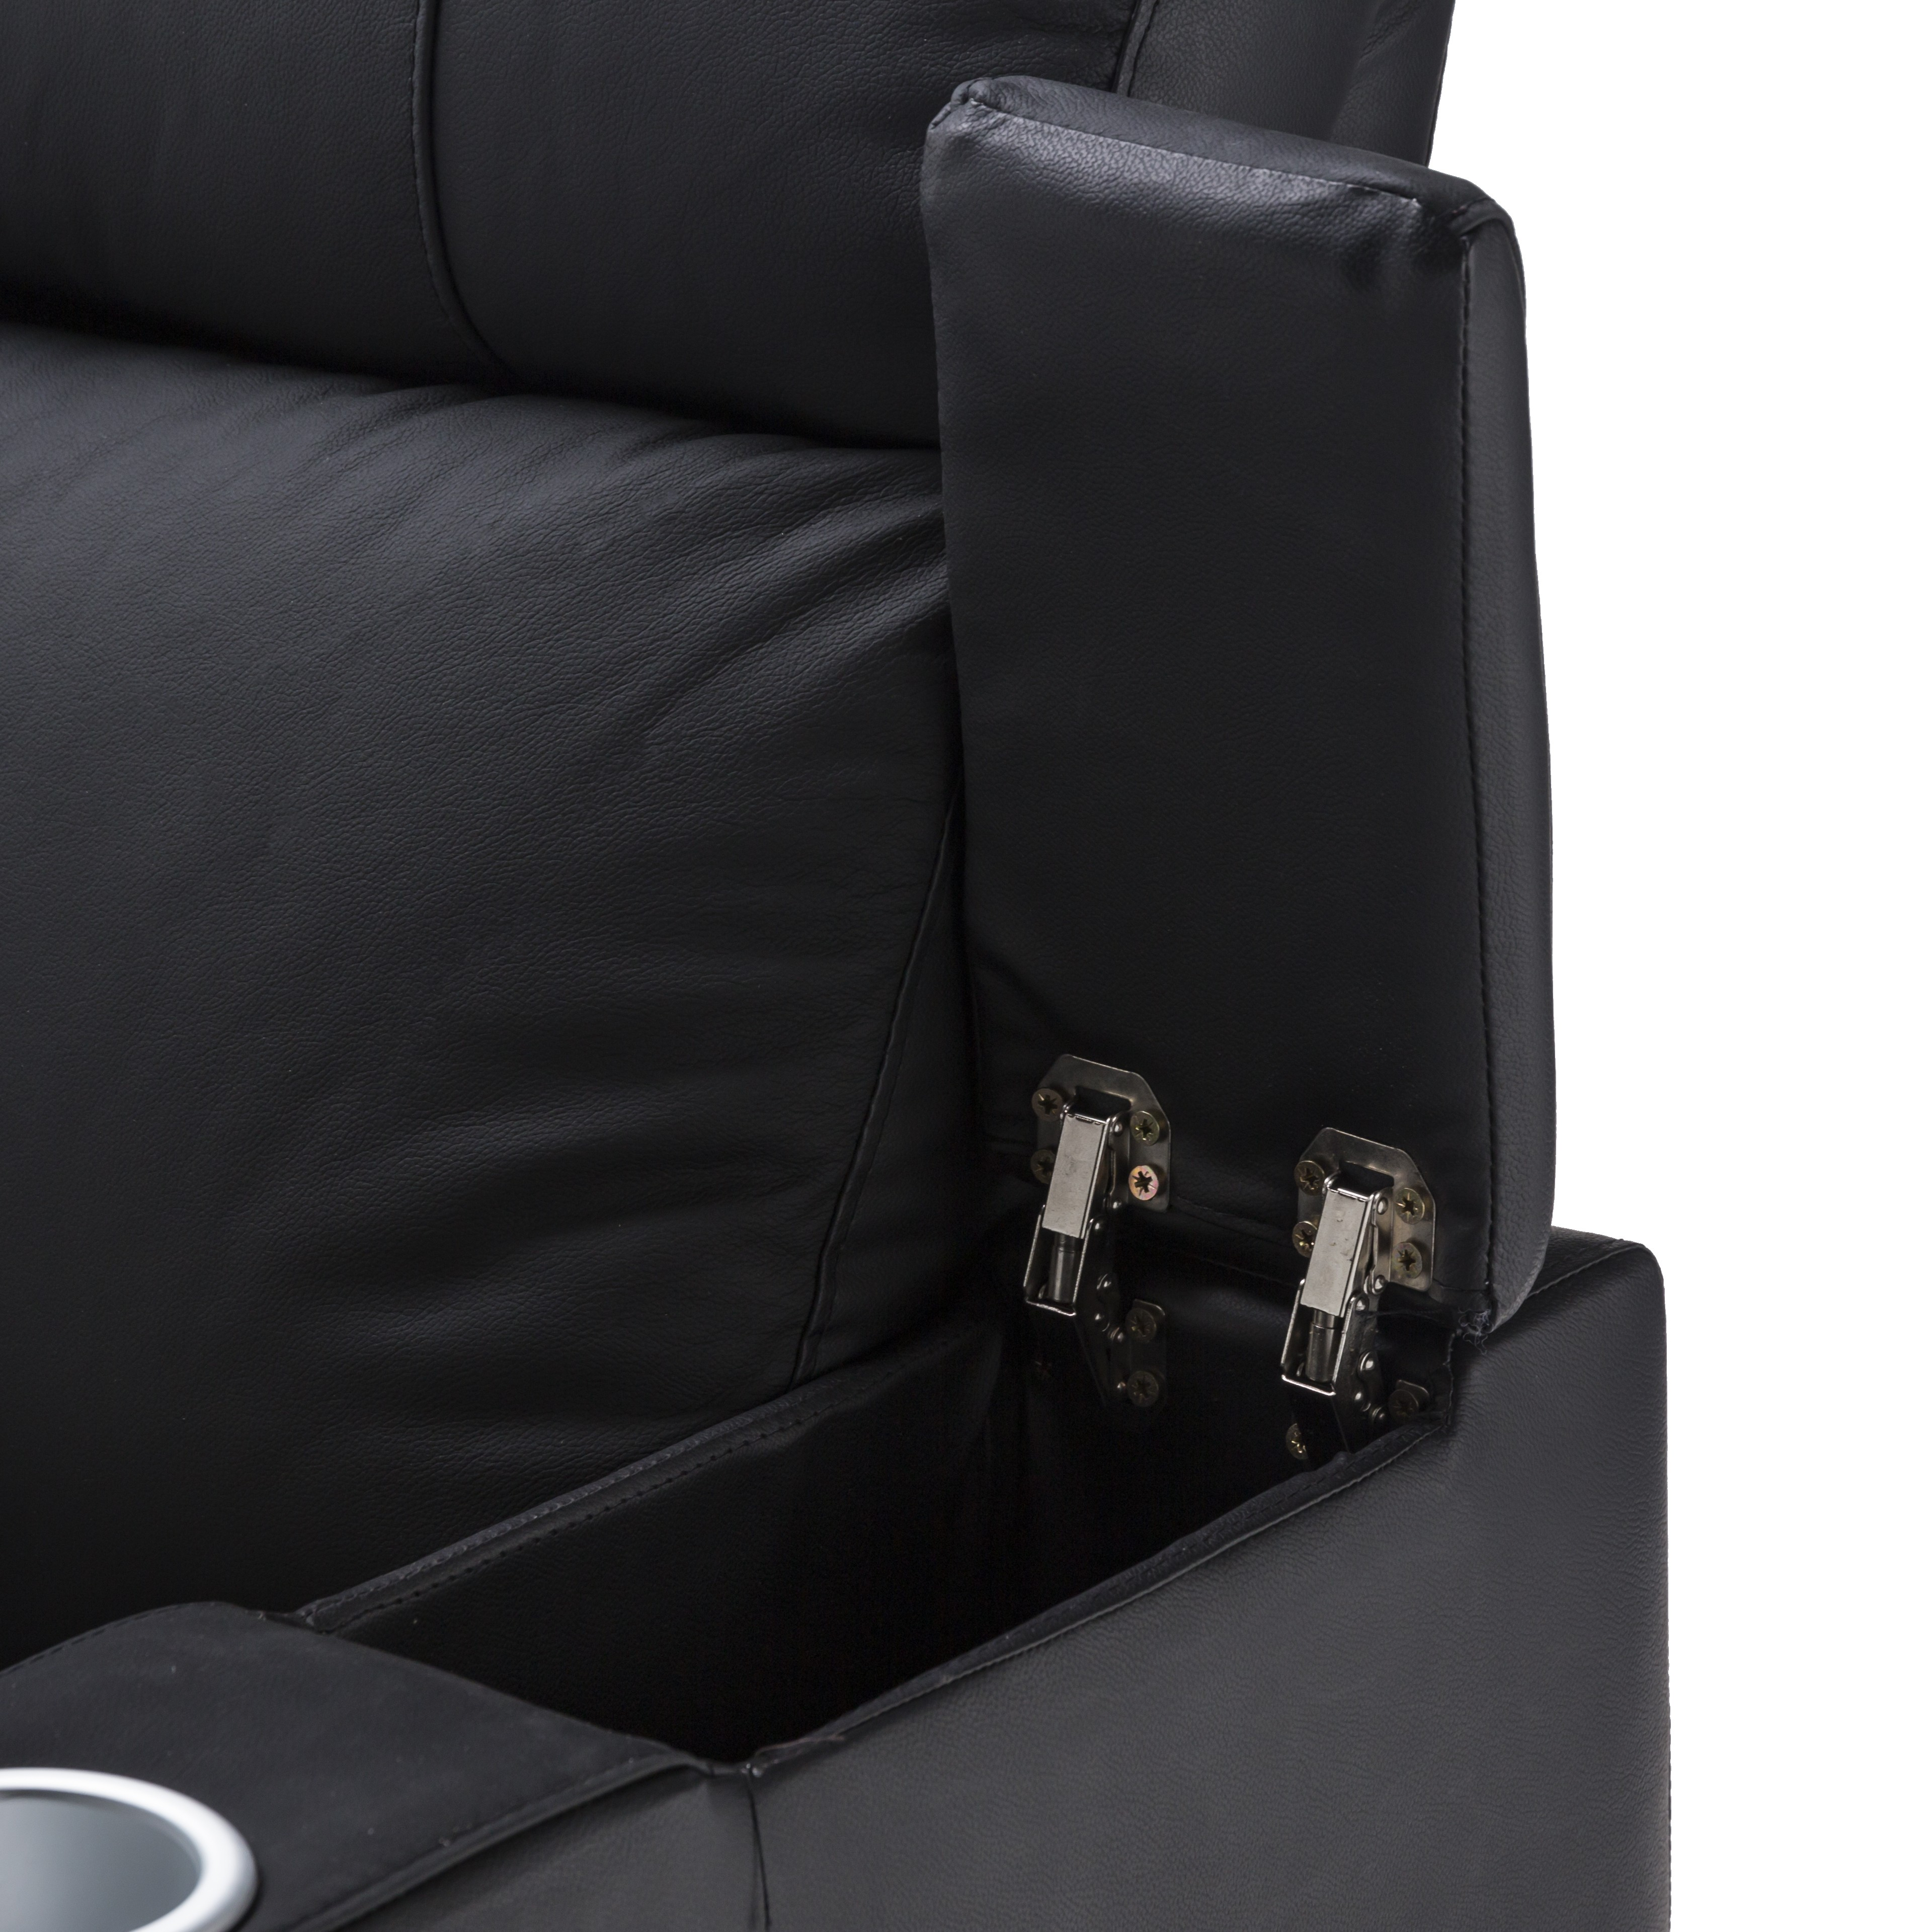 Theatre Room Lounge Suites: Anna Black Leather Electric Recliner Home Theatre Lounge